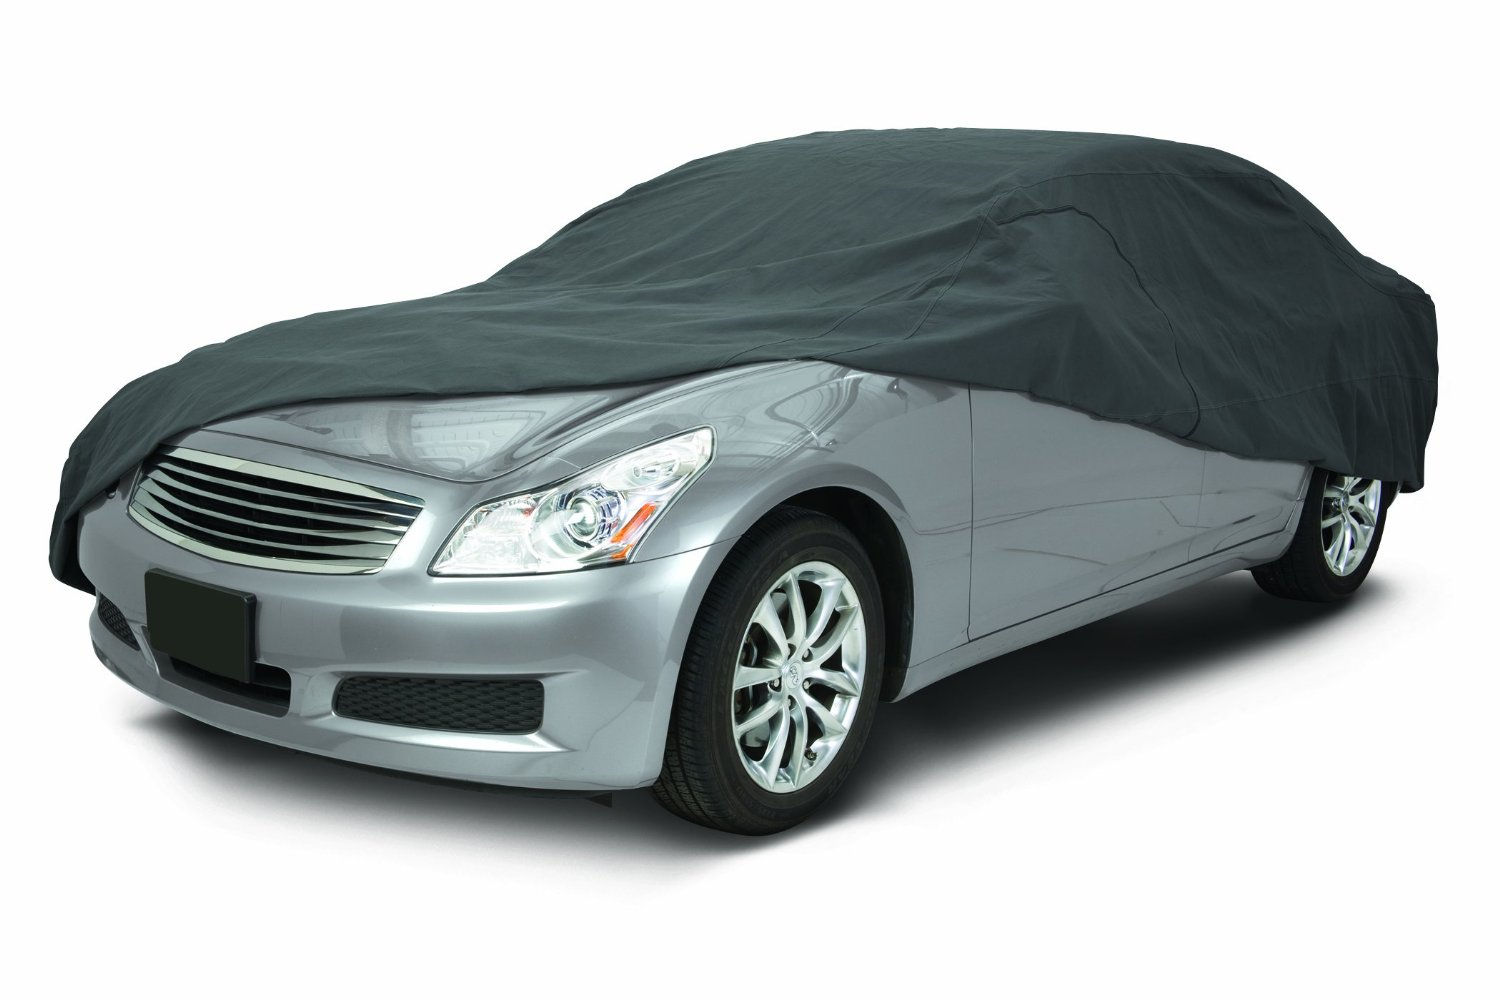 Classic Accessories Overdrive Polypro 3 Car Cover Review